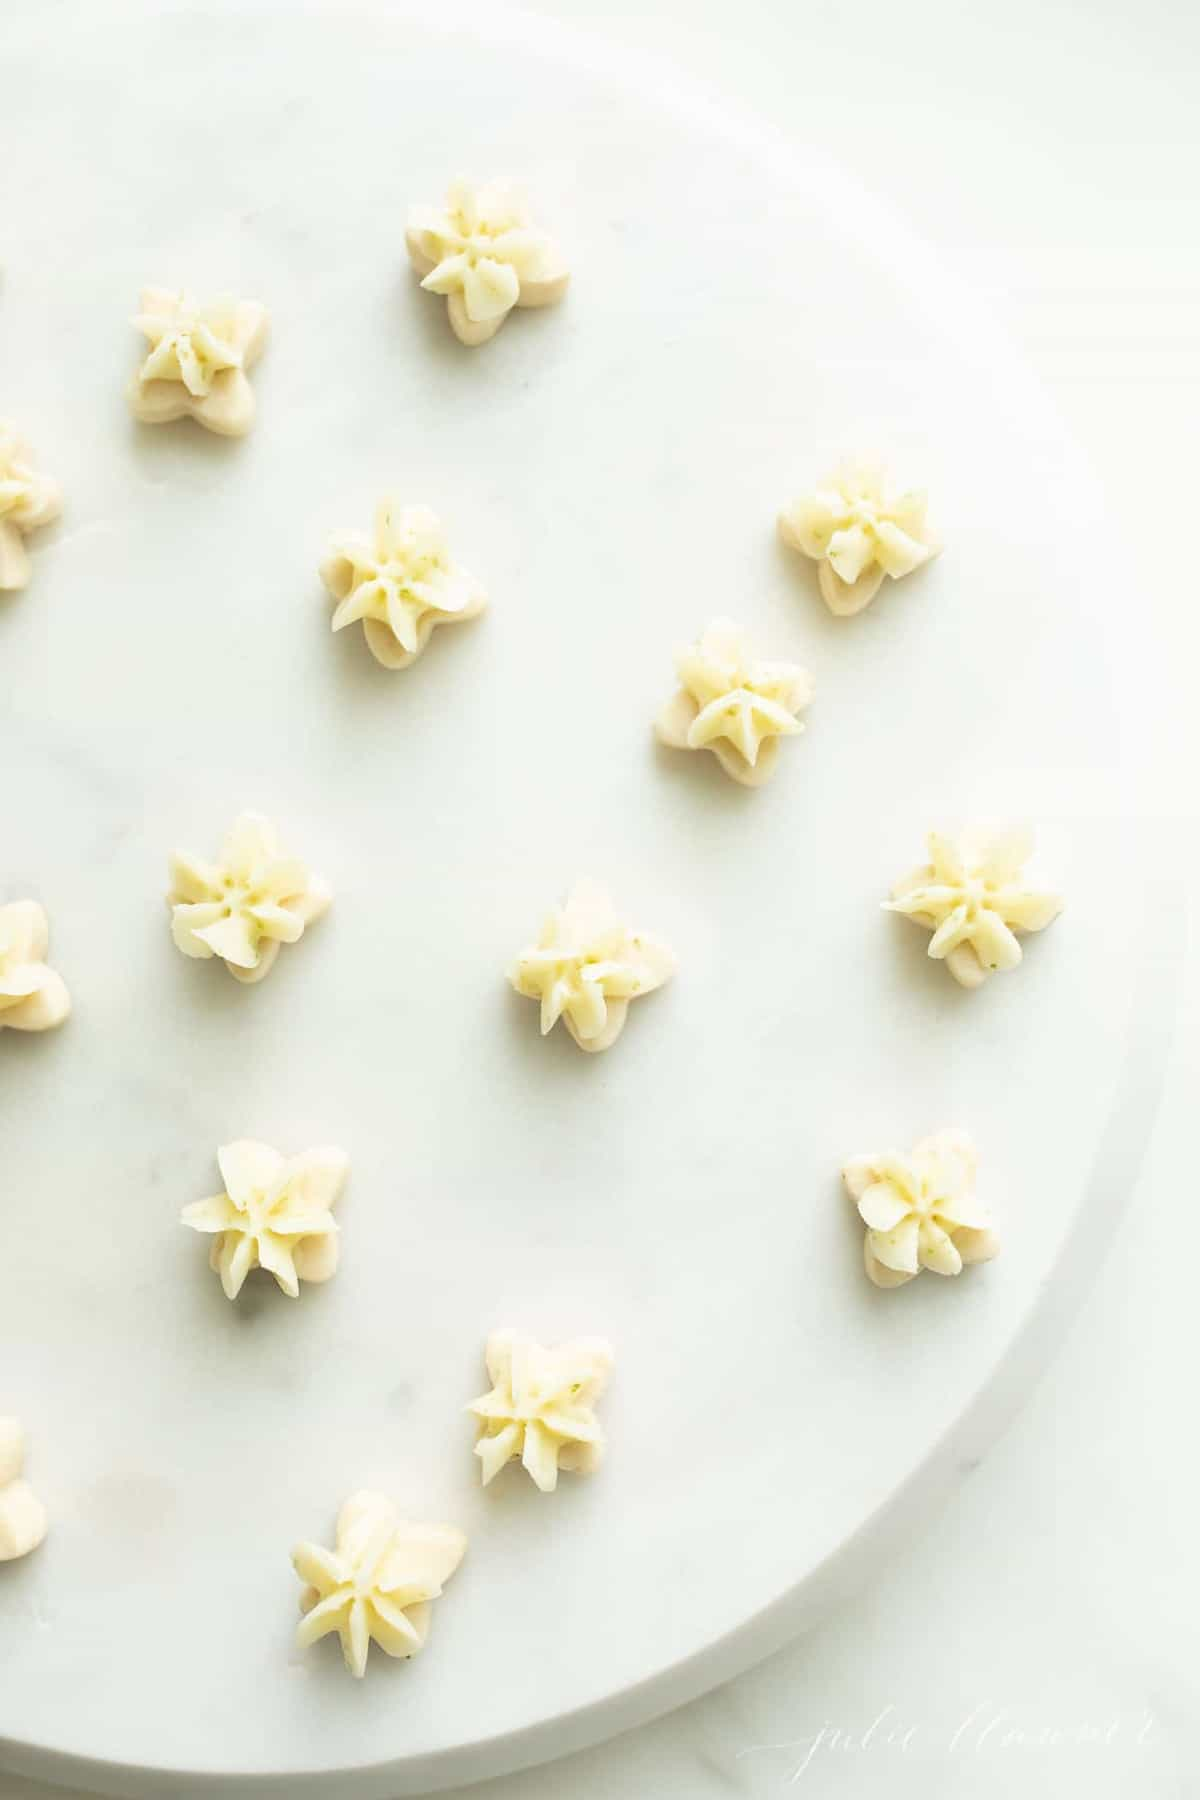 A marble surface full of tiny key lime cookies with frosting.